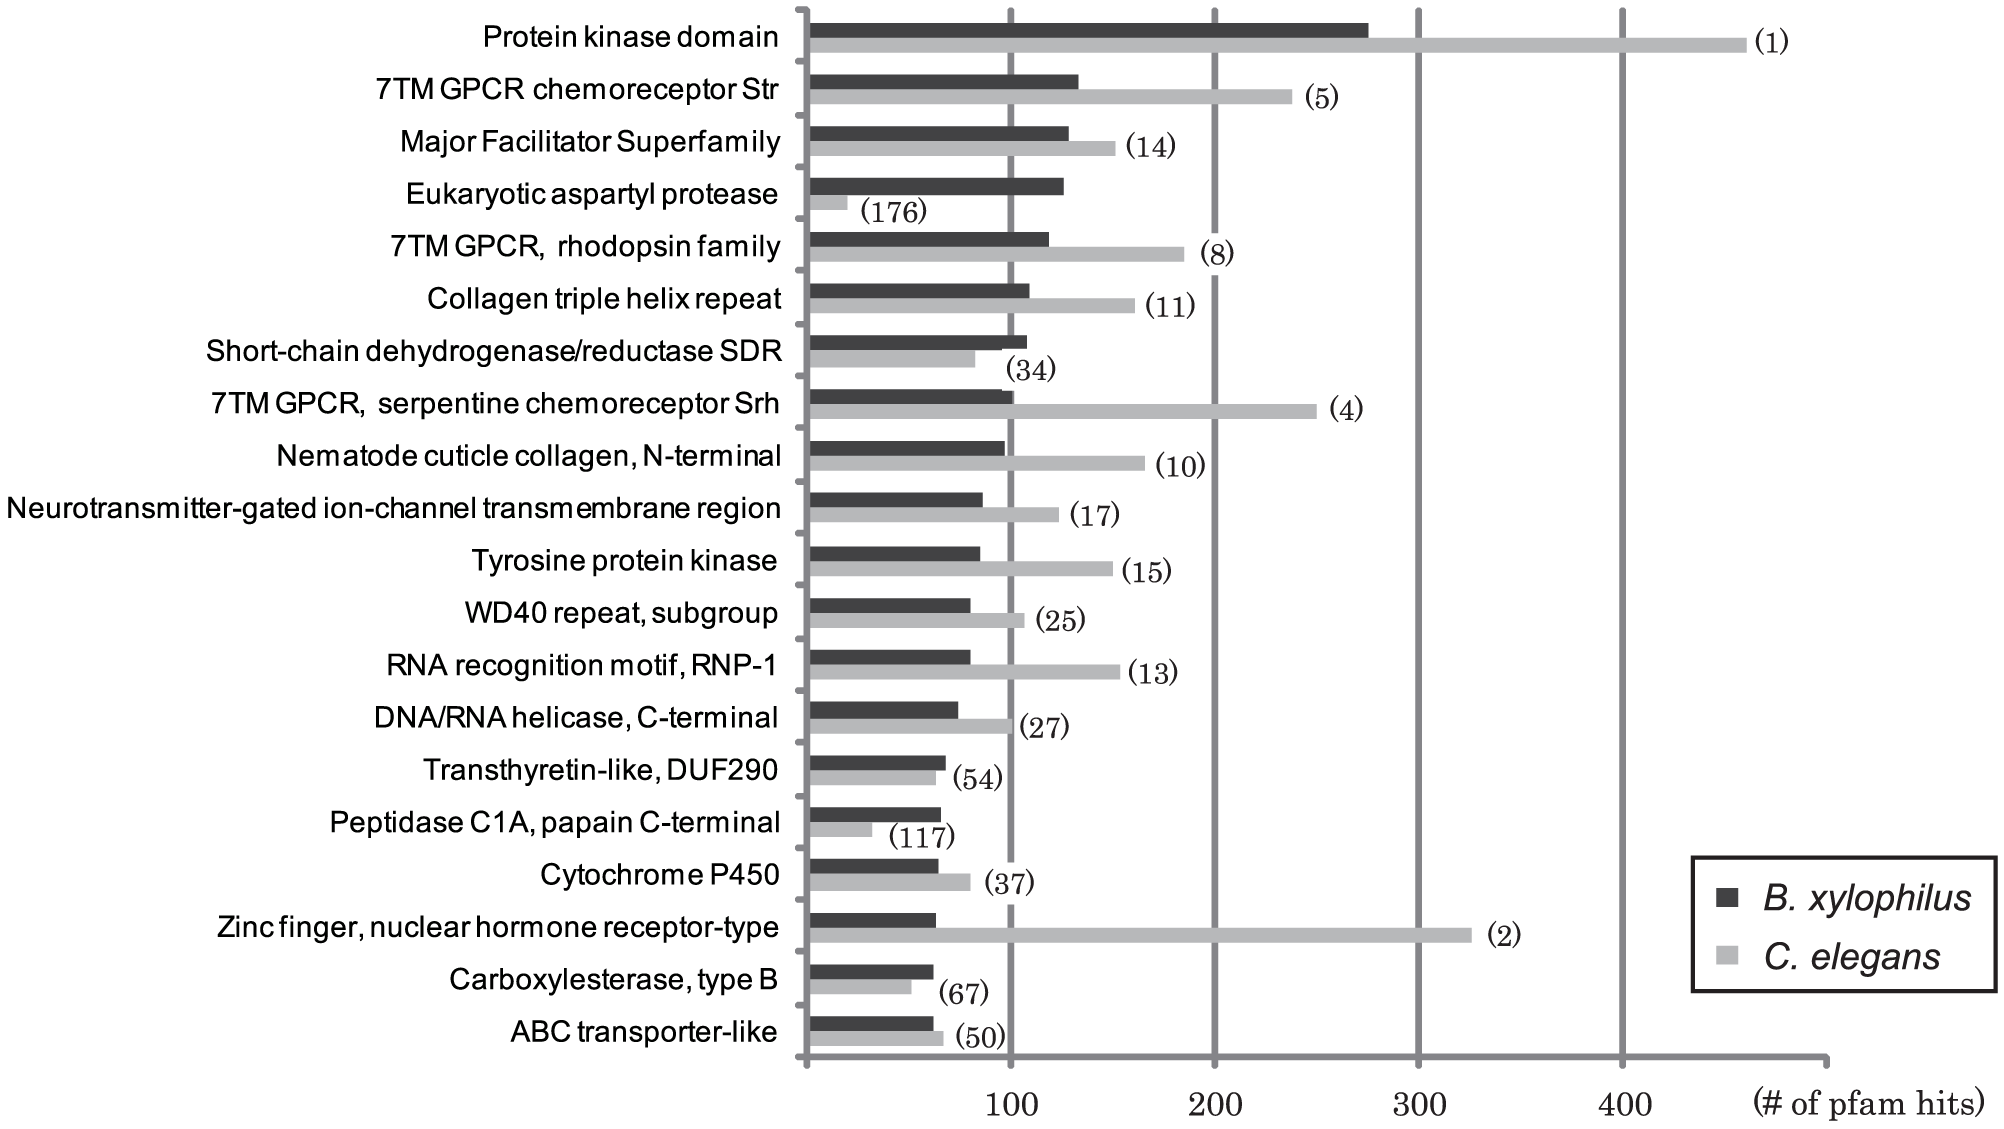 The most frequent Pfam domains found in <i>B. xylophilus</i> compared with those in <i>C. elegans</i>.